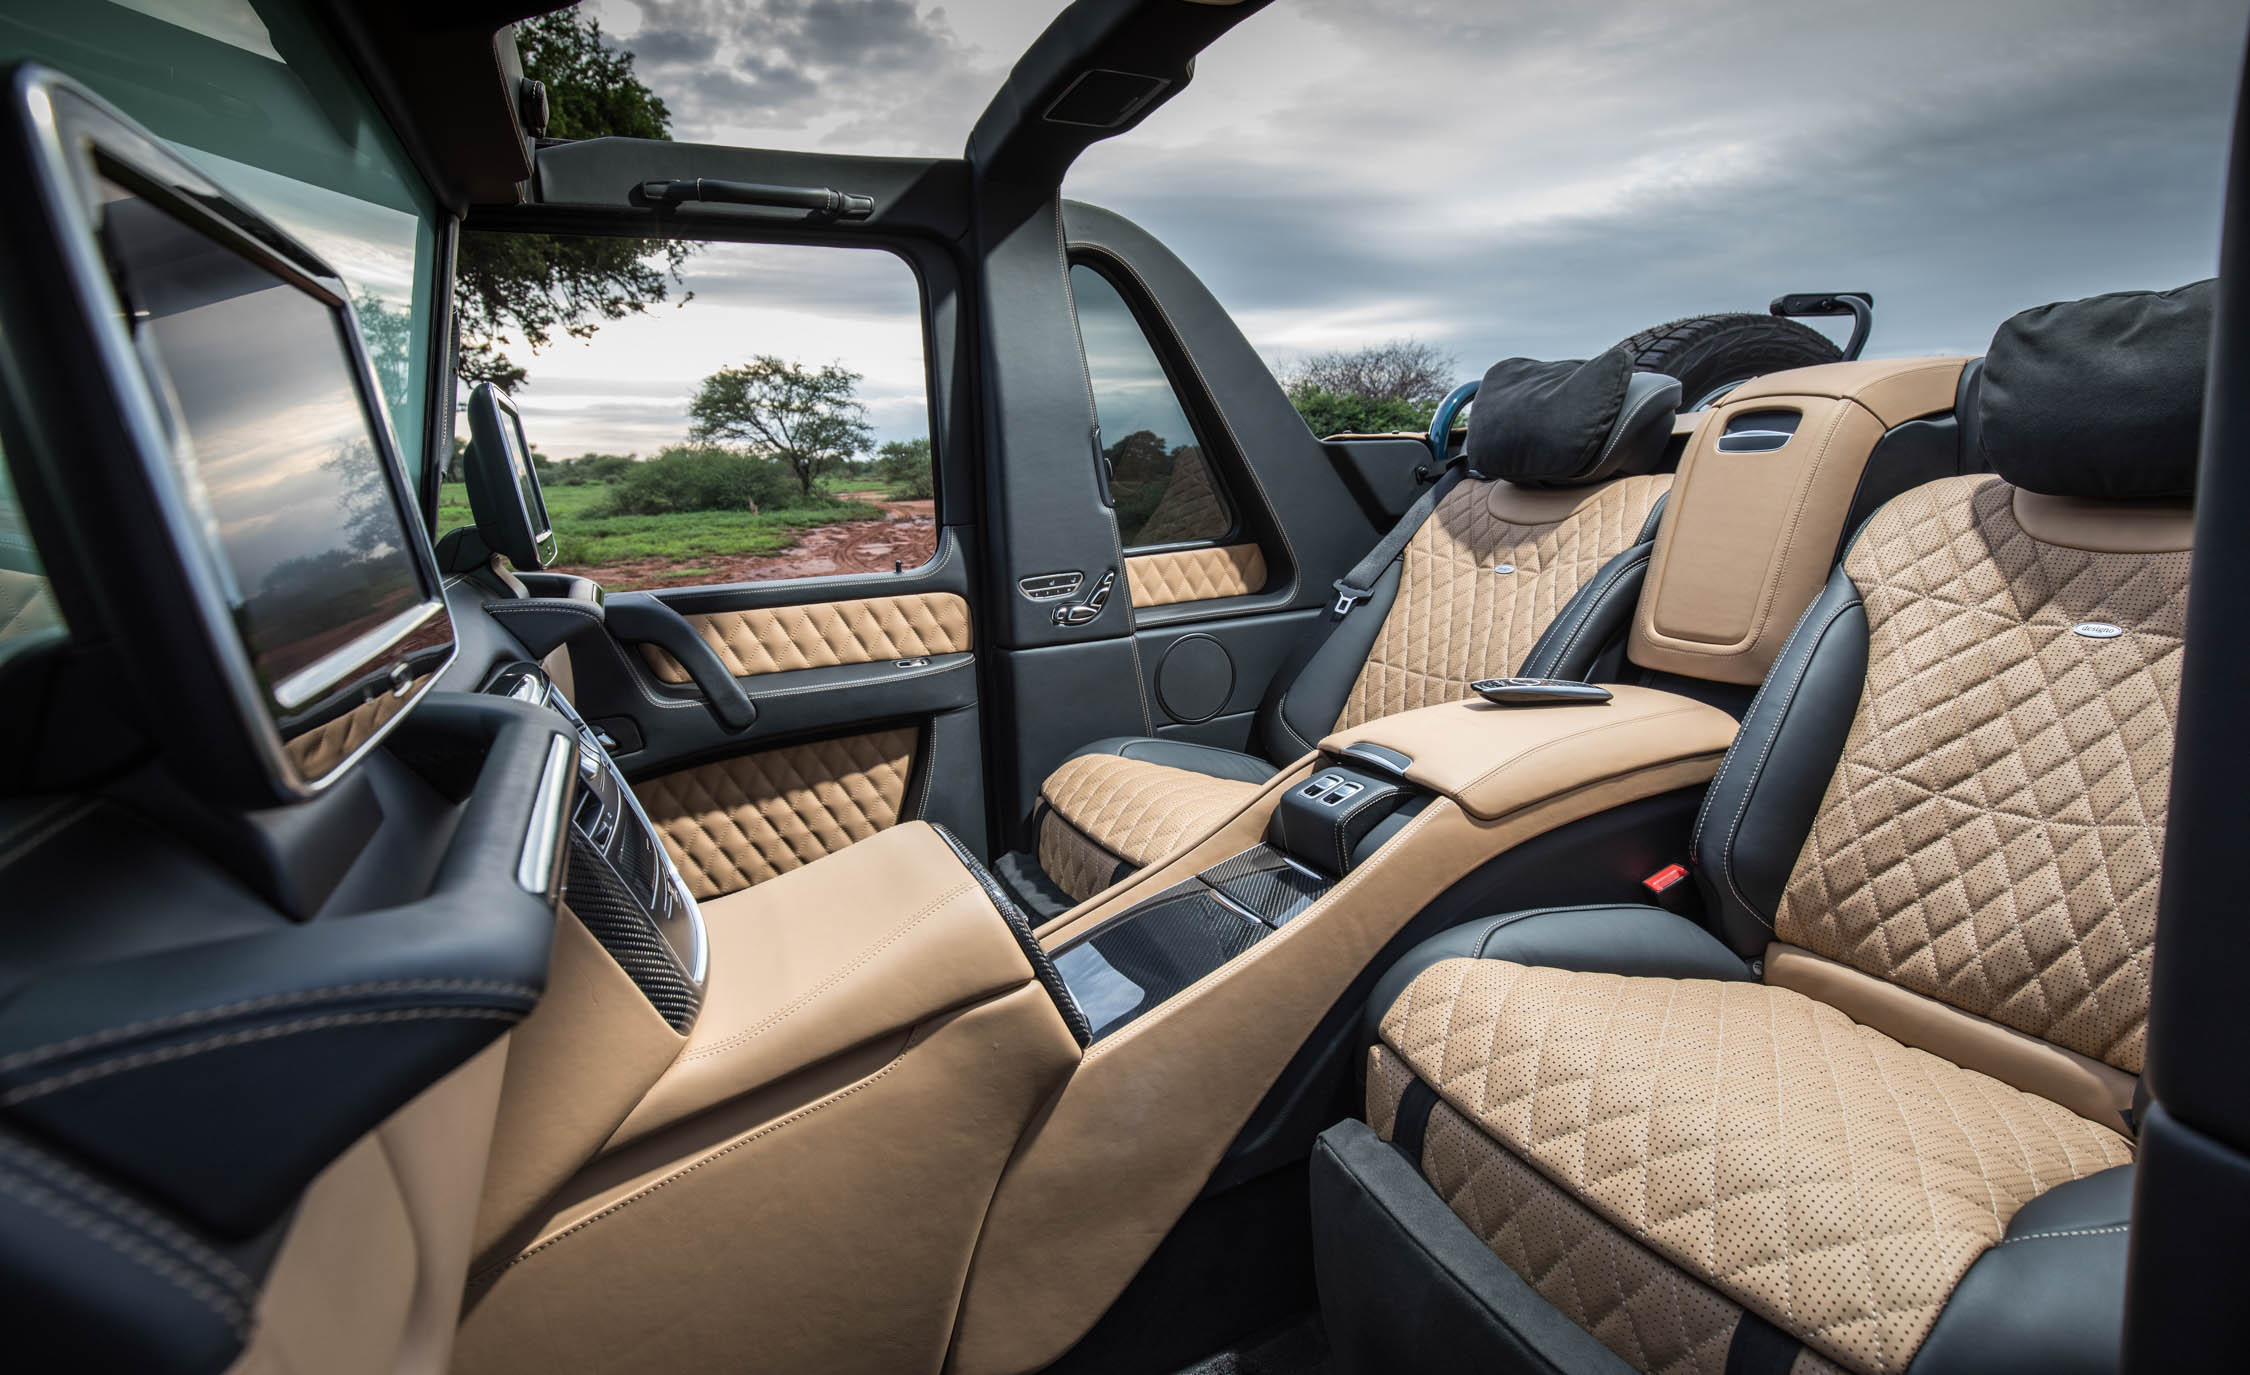 2018 Mercedes Maybach G650 Landaulet Interior Seats Rear (View 28 of 52)